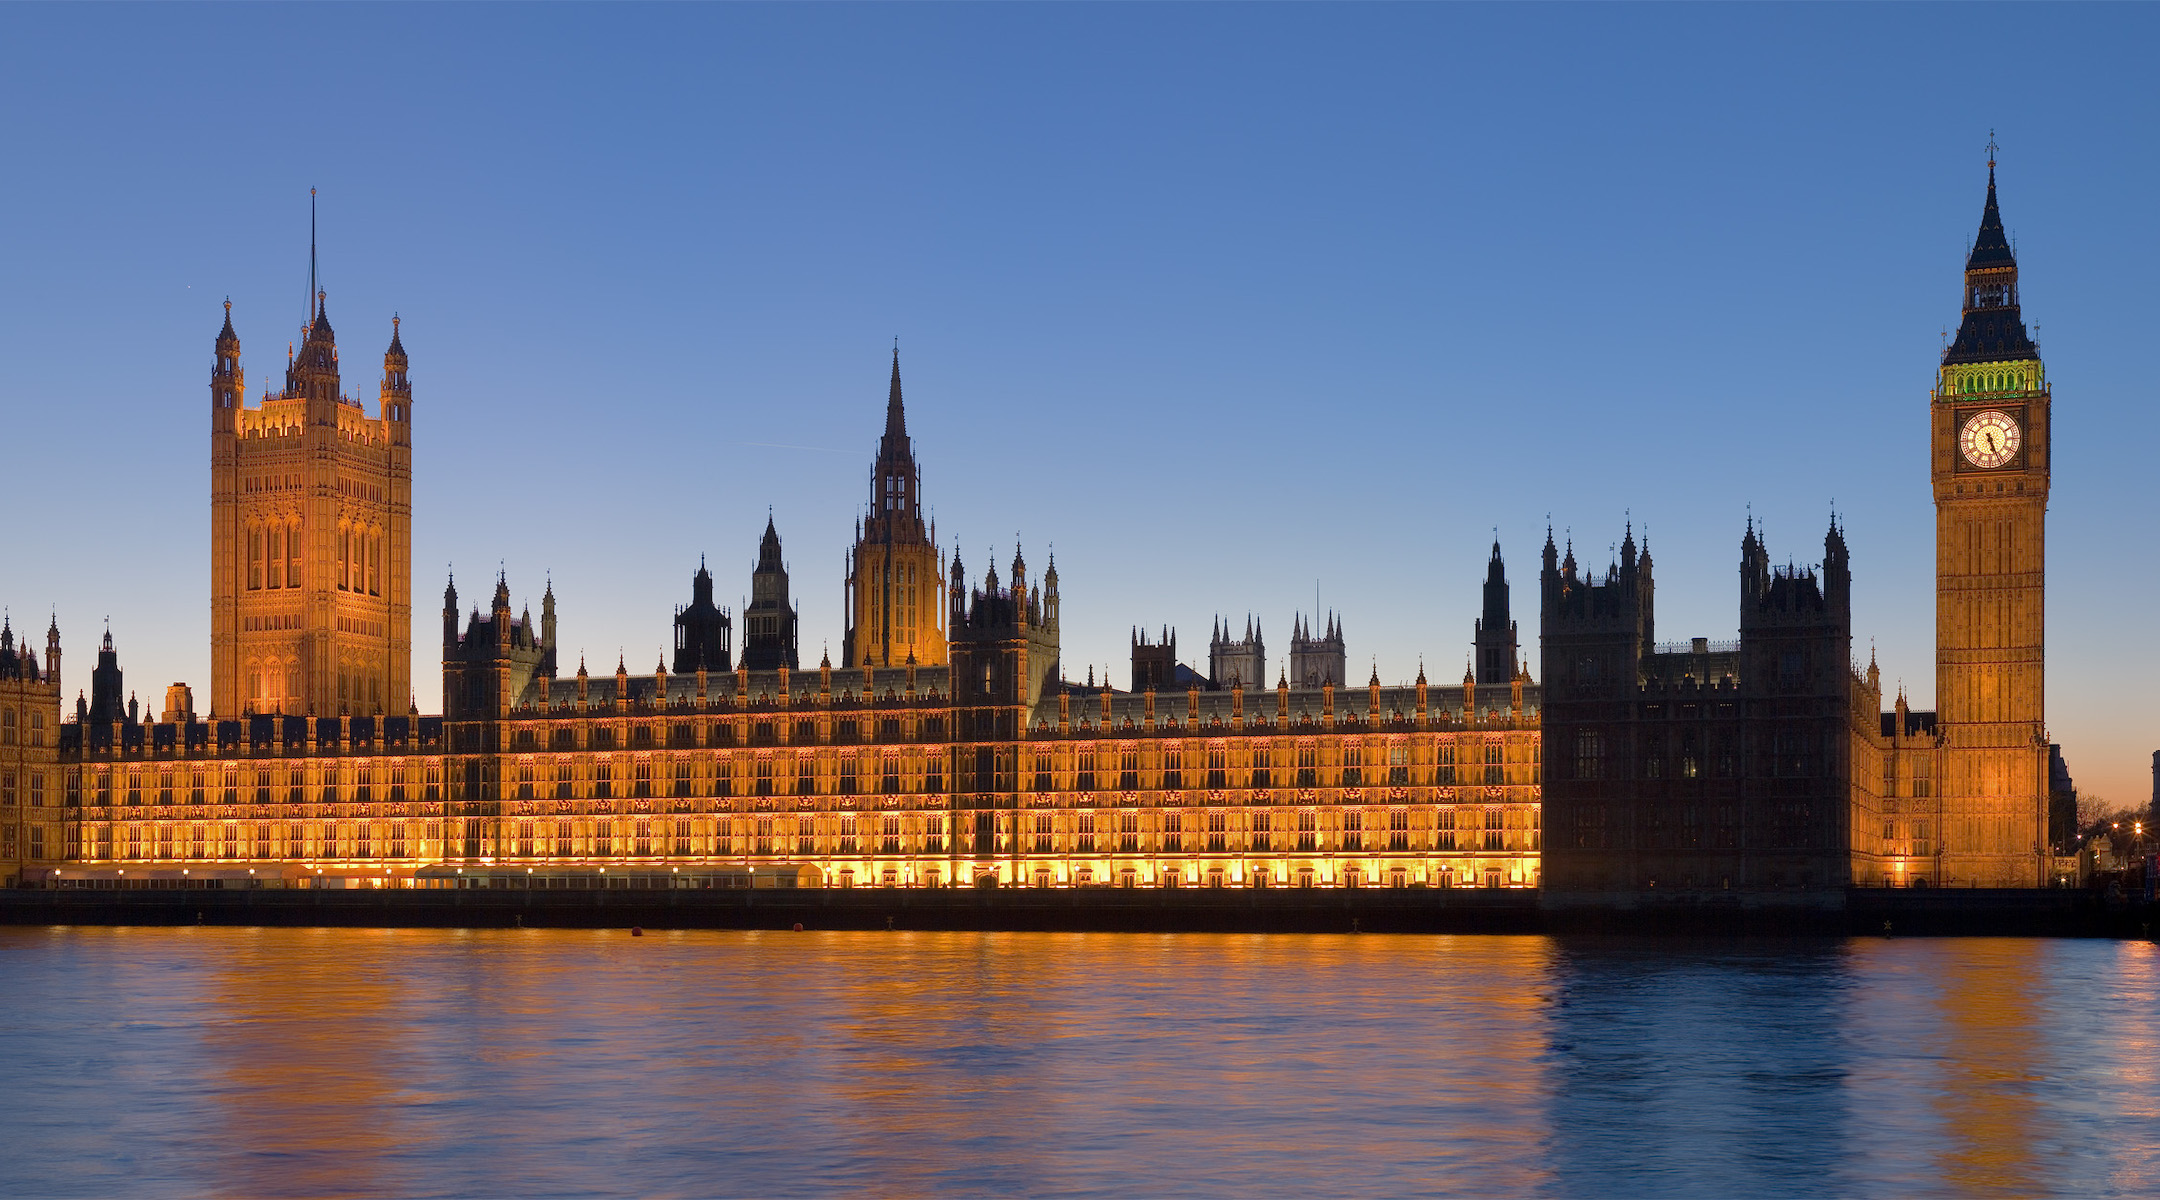 The Palace of Westminster, London. (Wikimedia Commons)